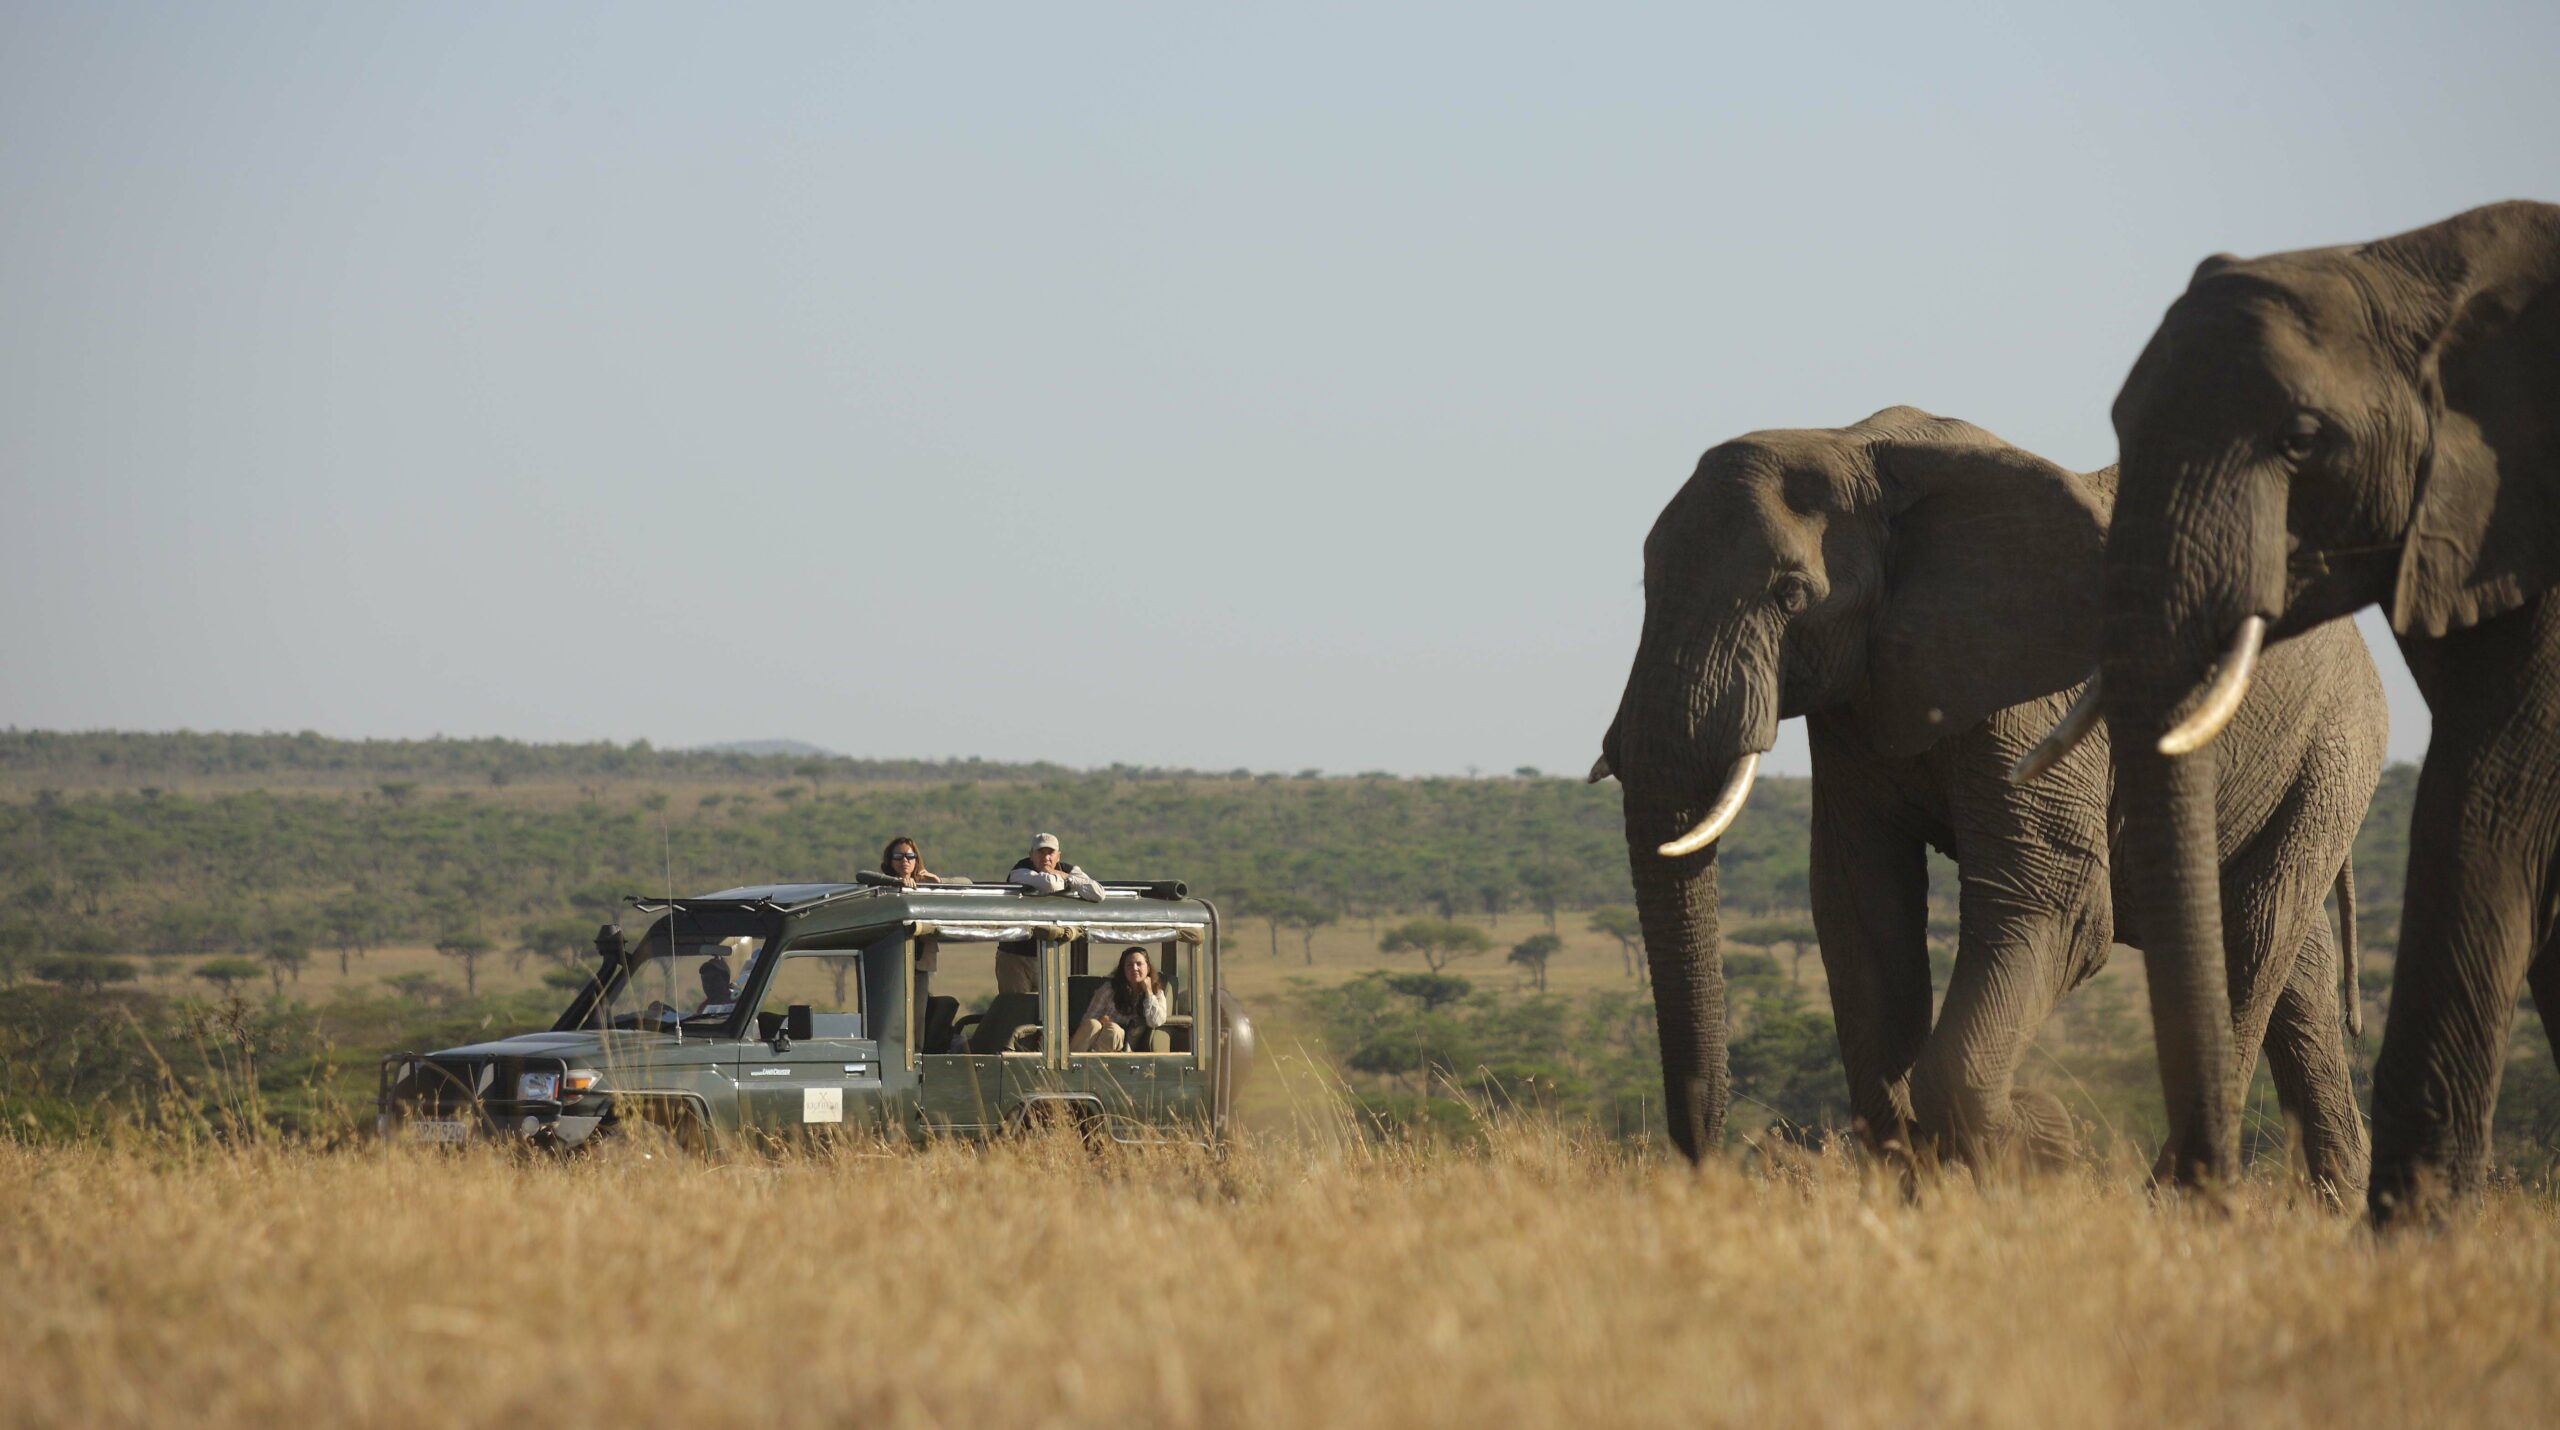 game drive at kicheche valley with people in a safari vehicle admiring a large elephant